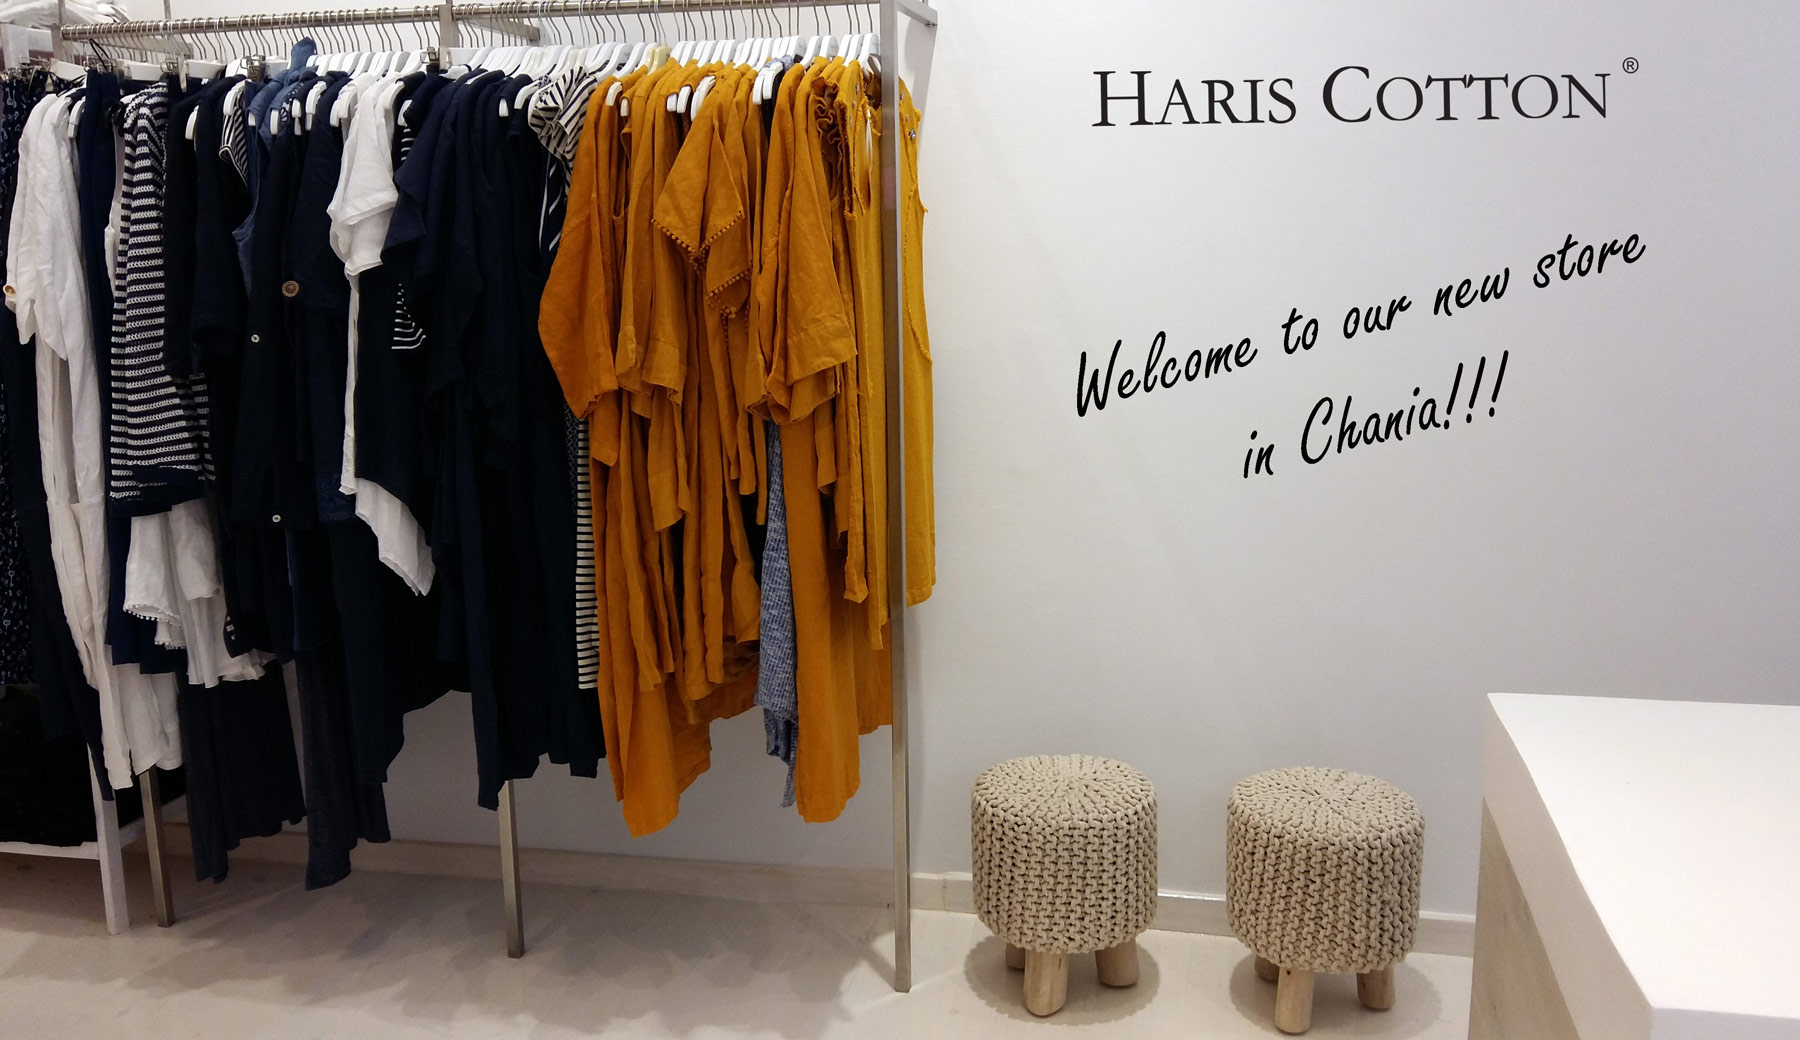 Haris-Cotton-Chania-promo-2.jpg